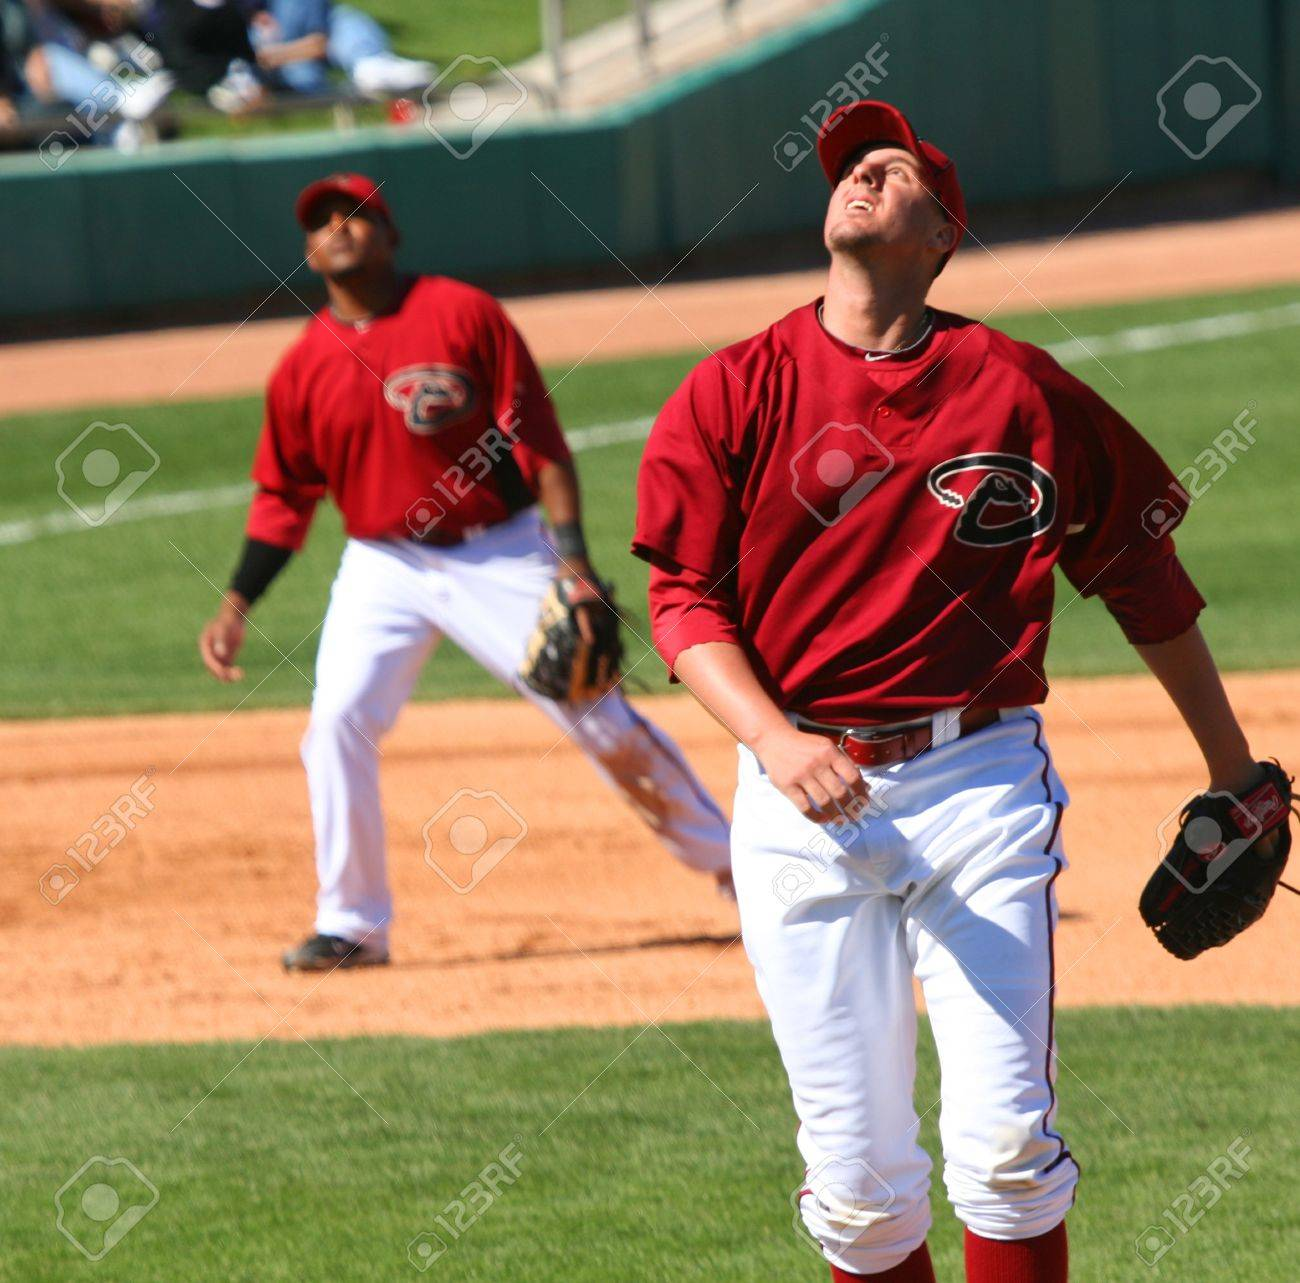 Bryan Augenstein follows a pop up in an Arizona Diamondbacks game against the Los Angeles Angels on March 11, 2010, at Tucson Electric Park in Tucson, Arizona, during spring training. Tony Abreu is playing third base. Stock Photo - 6890724